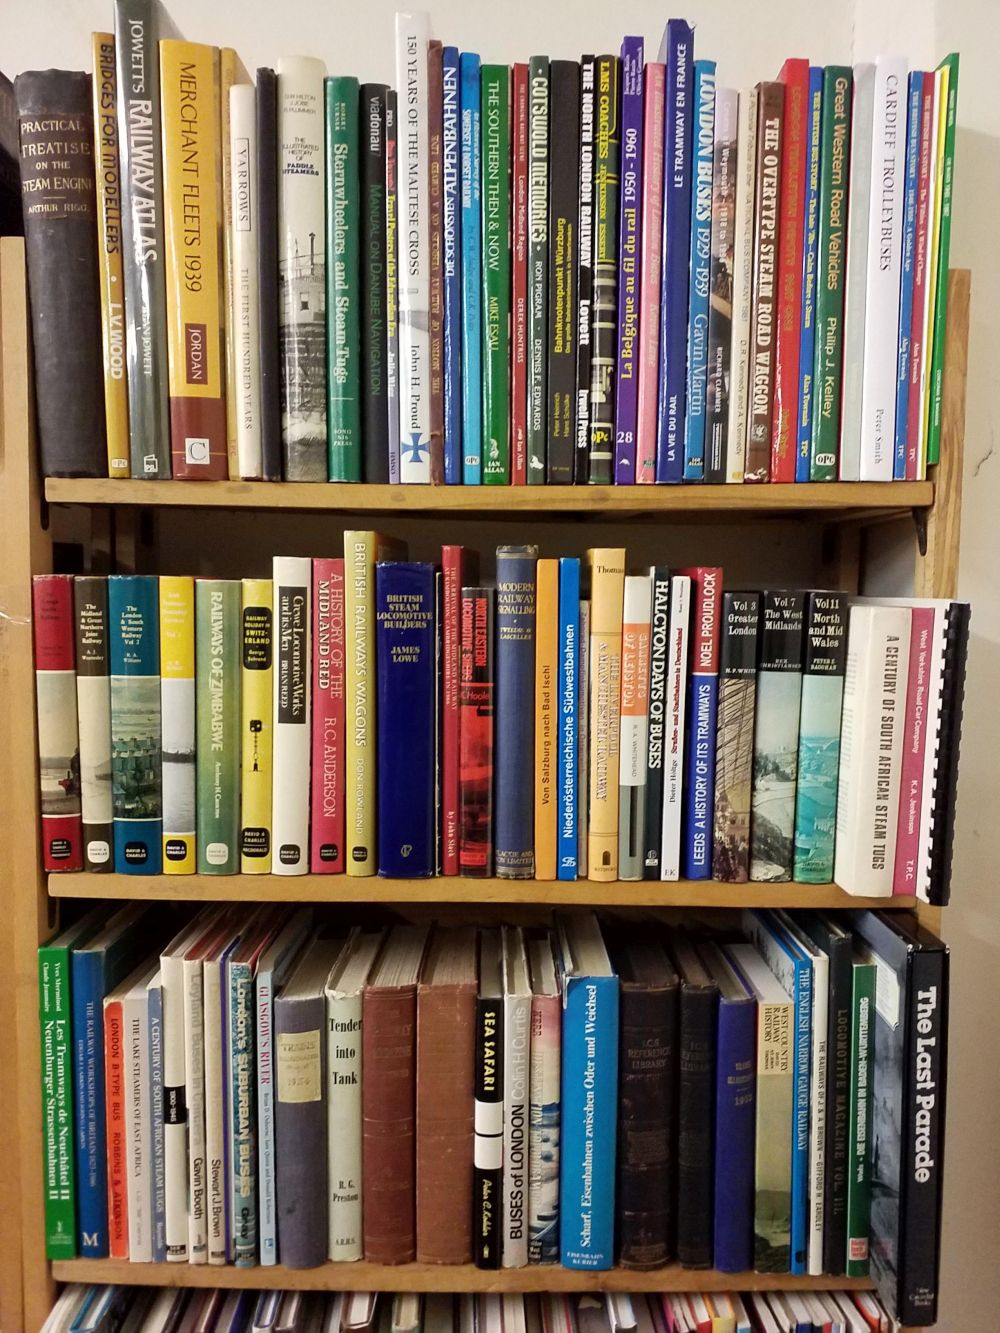 Transport. A large collection of modern railway, bus & transport reference